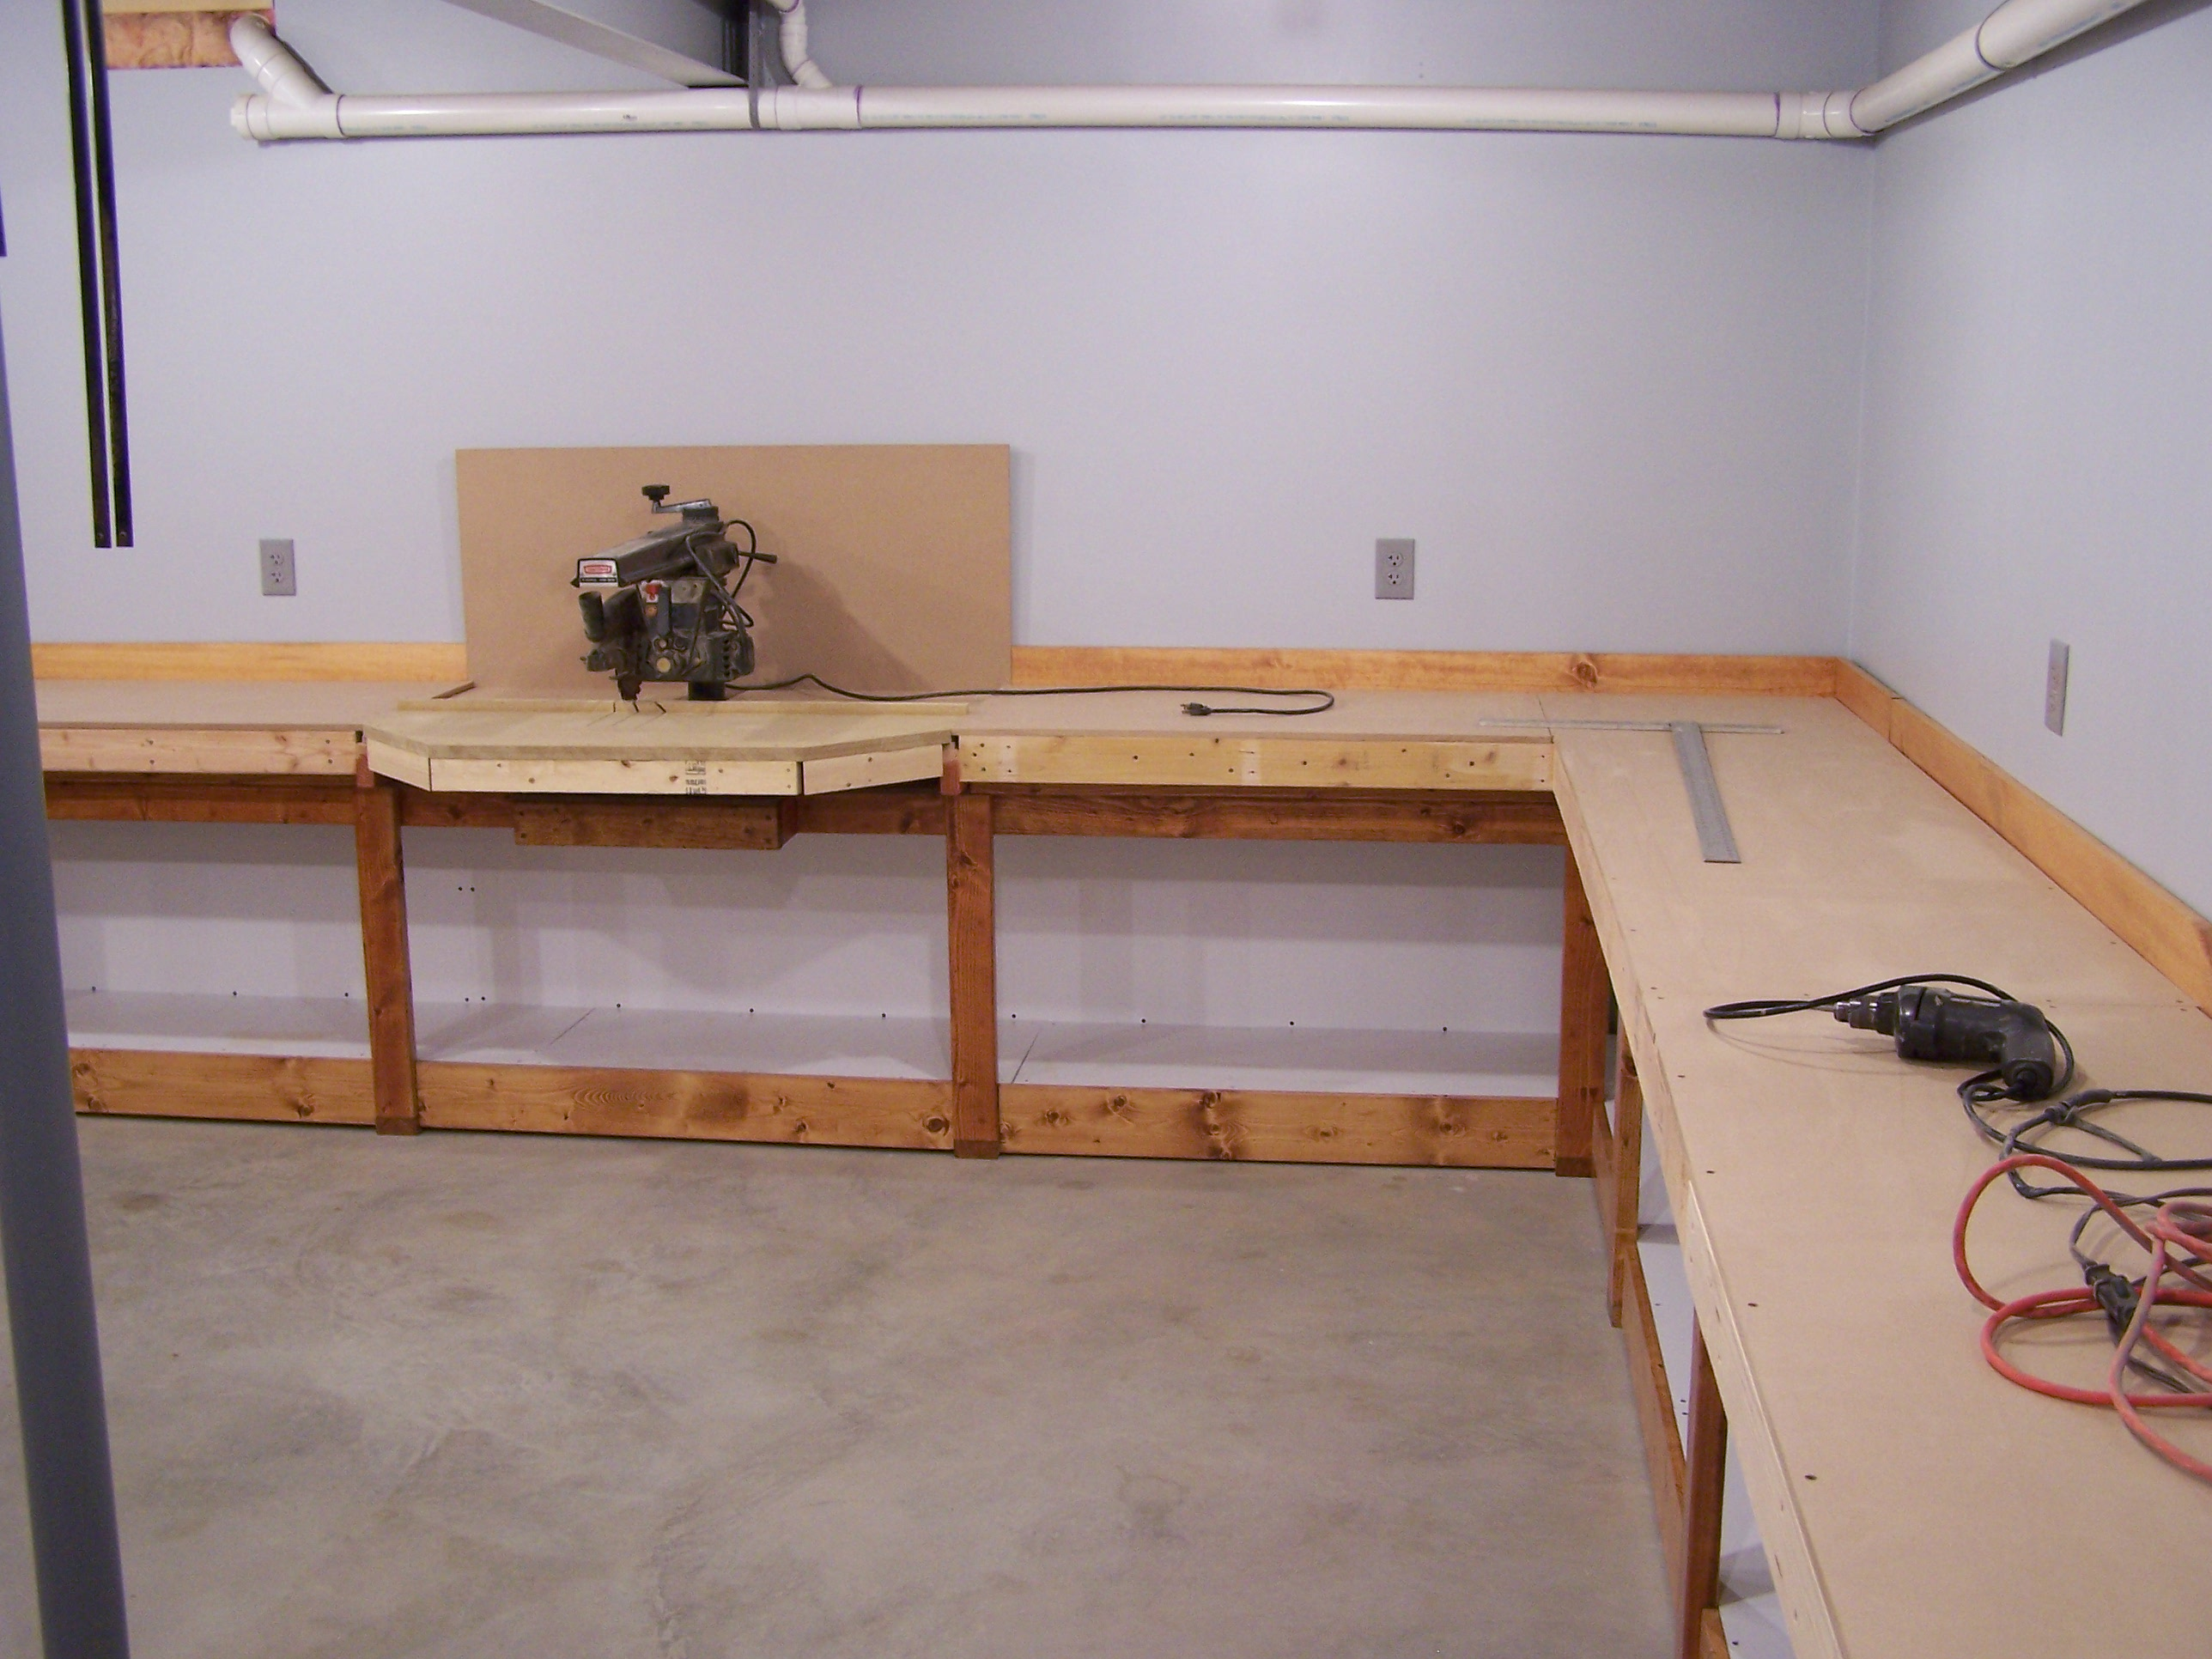 Radial Arm Saw Bench Plans http://www.lkorailroad.com/workbench-progress-update/